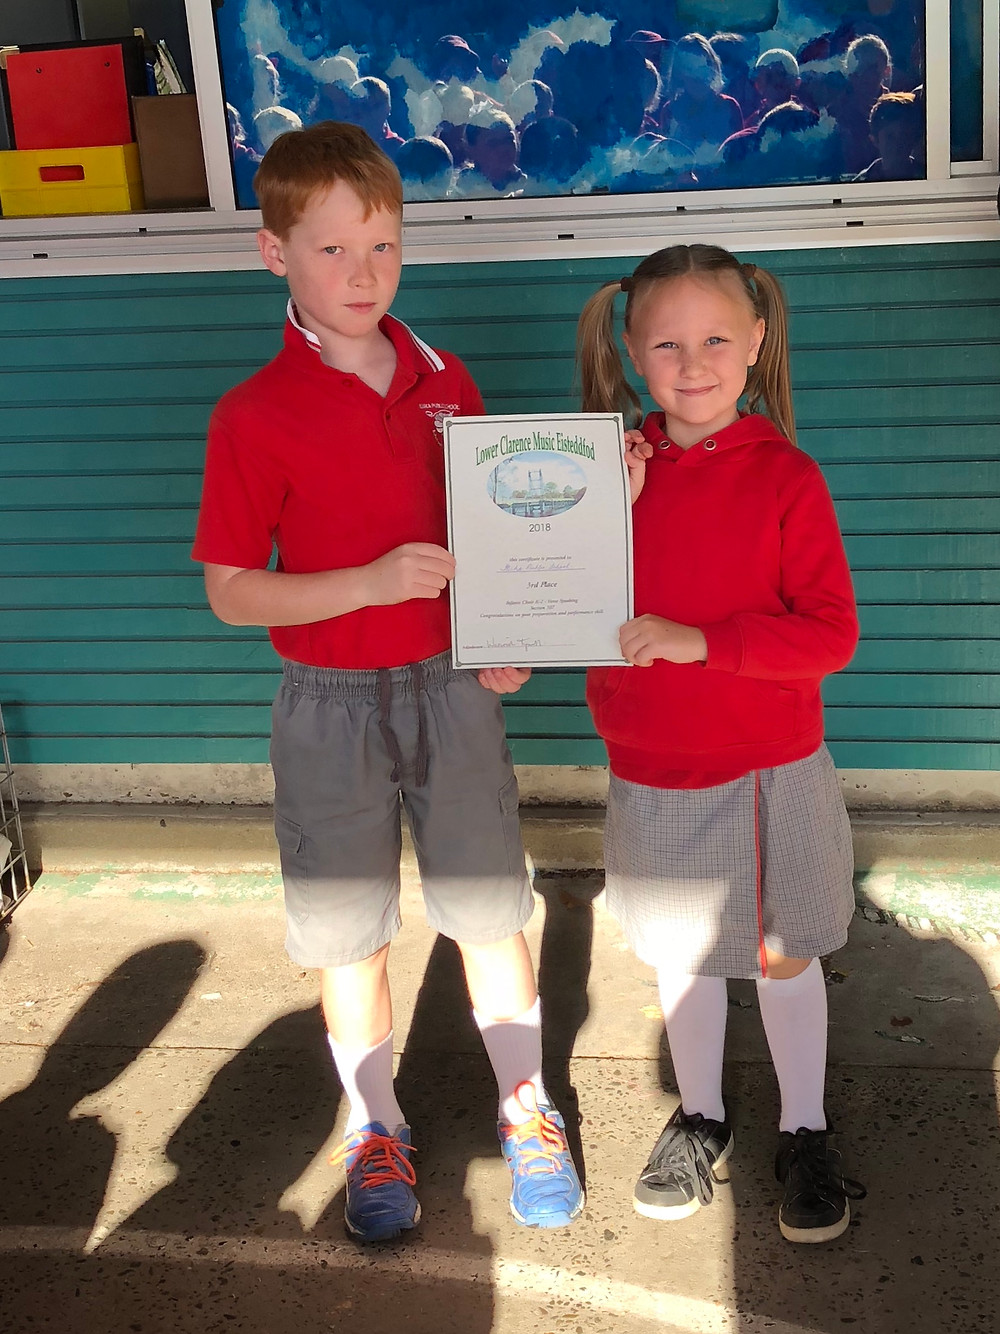 students holding award from Lower Clarence Music Eisteddfod